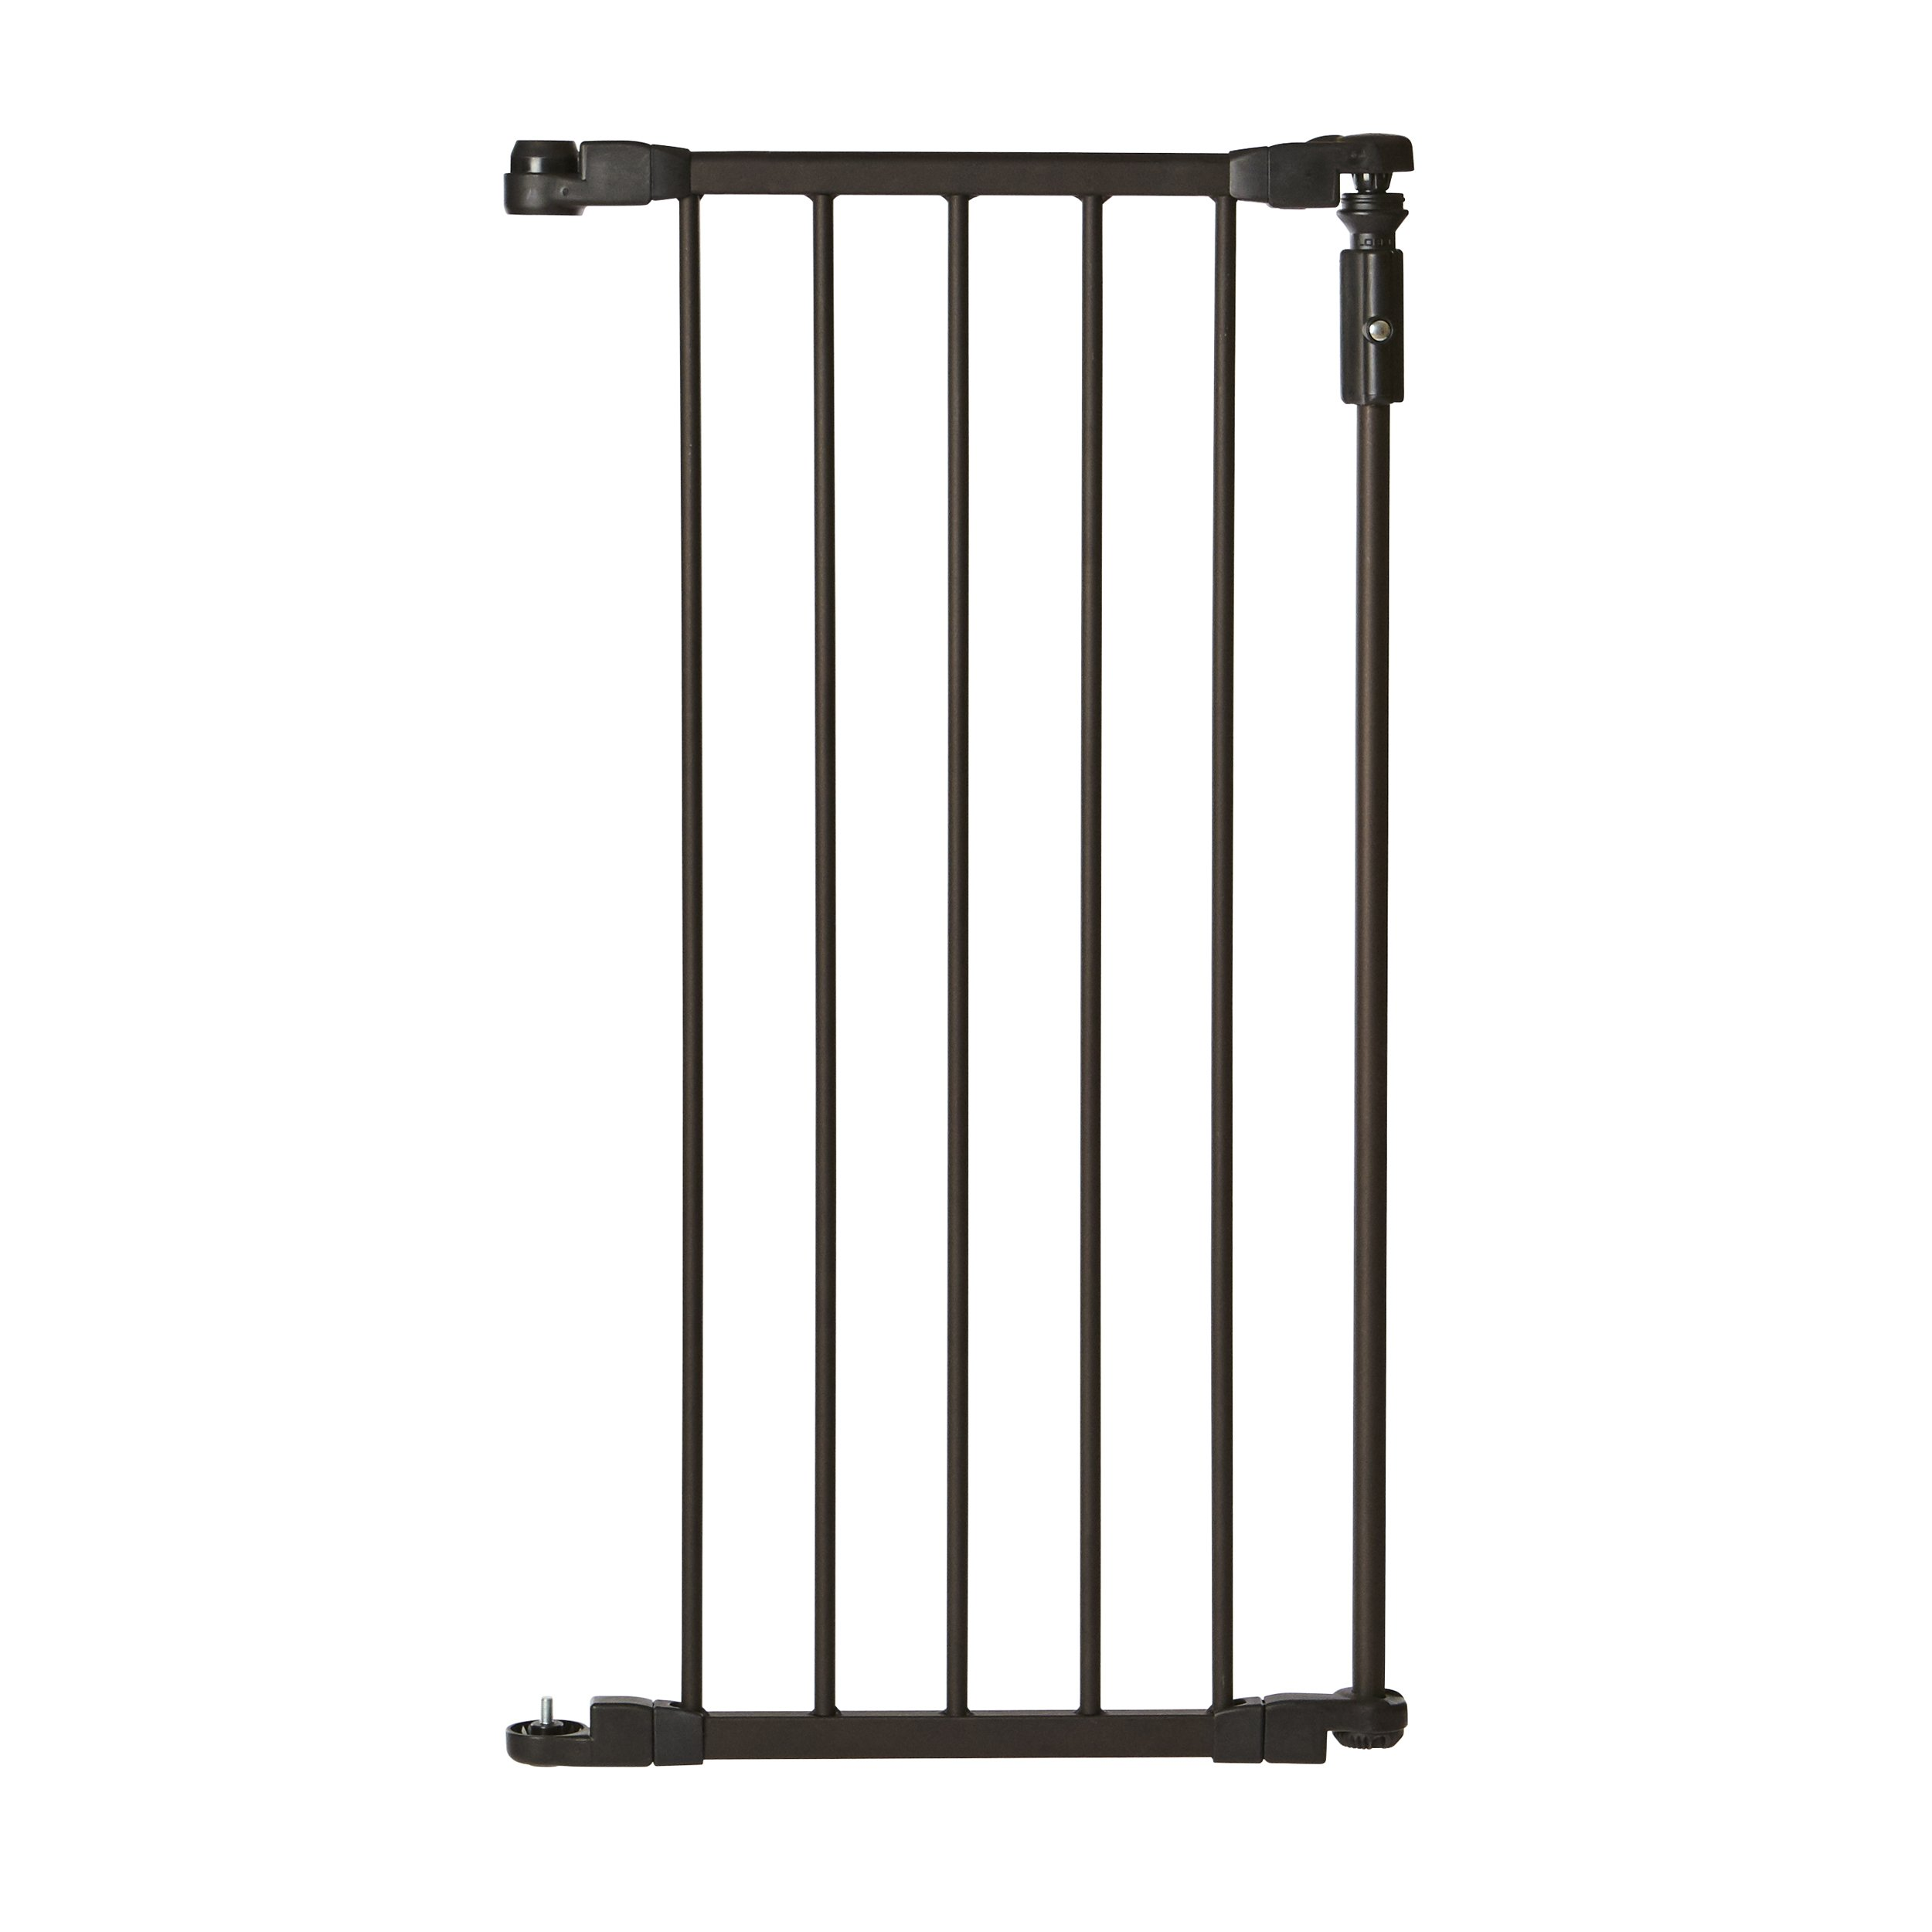 ''Deluxe Décor Single Panel Gate Extension'' by North States: 1 extension for''Deluxe Décor Gate'' (Adds up to 15'' width, 30'' tall, Matte bronze) by North States